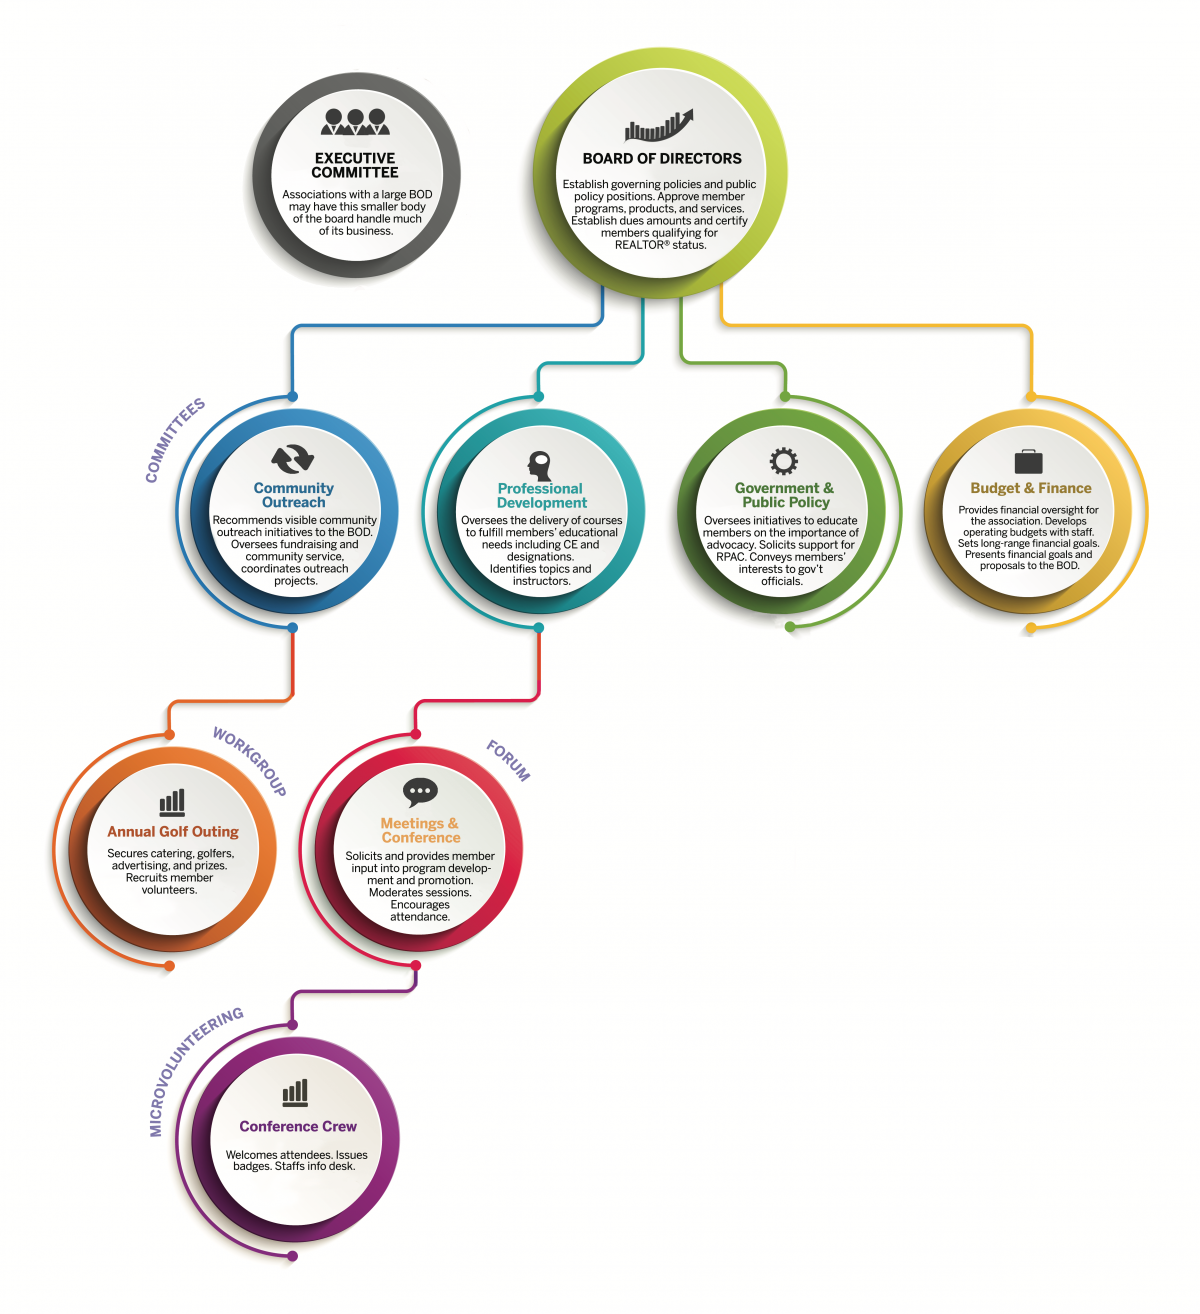 Sample Governance Structure showing board of directors, committees, on down.